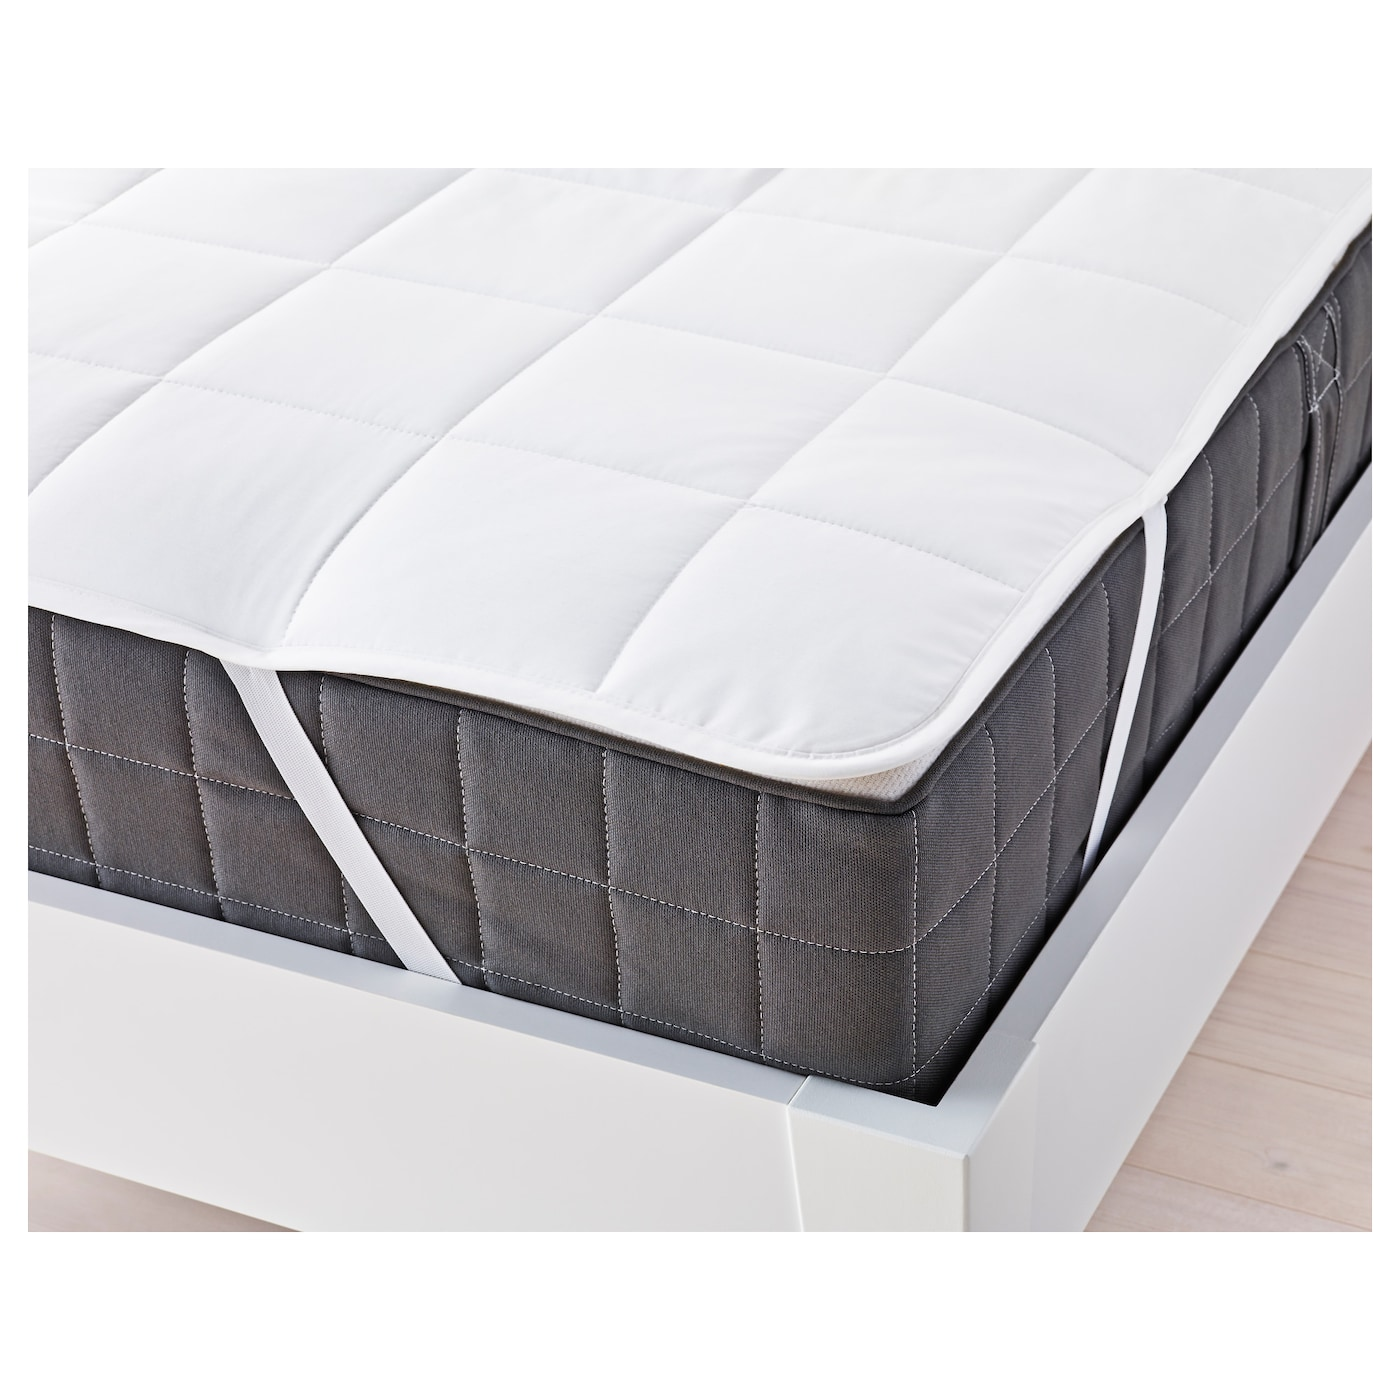 morgedal foam mattress firm dark grey standard double ikea. Black Bedroom Furniture Sets. Home Design Ideas